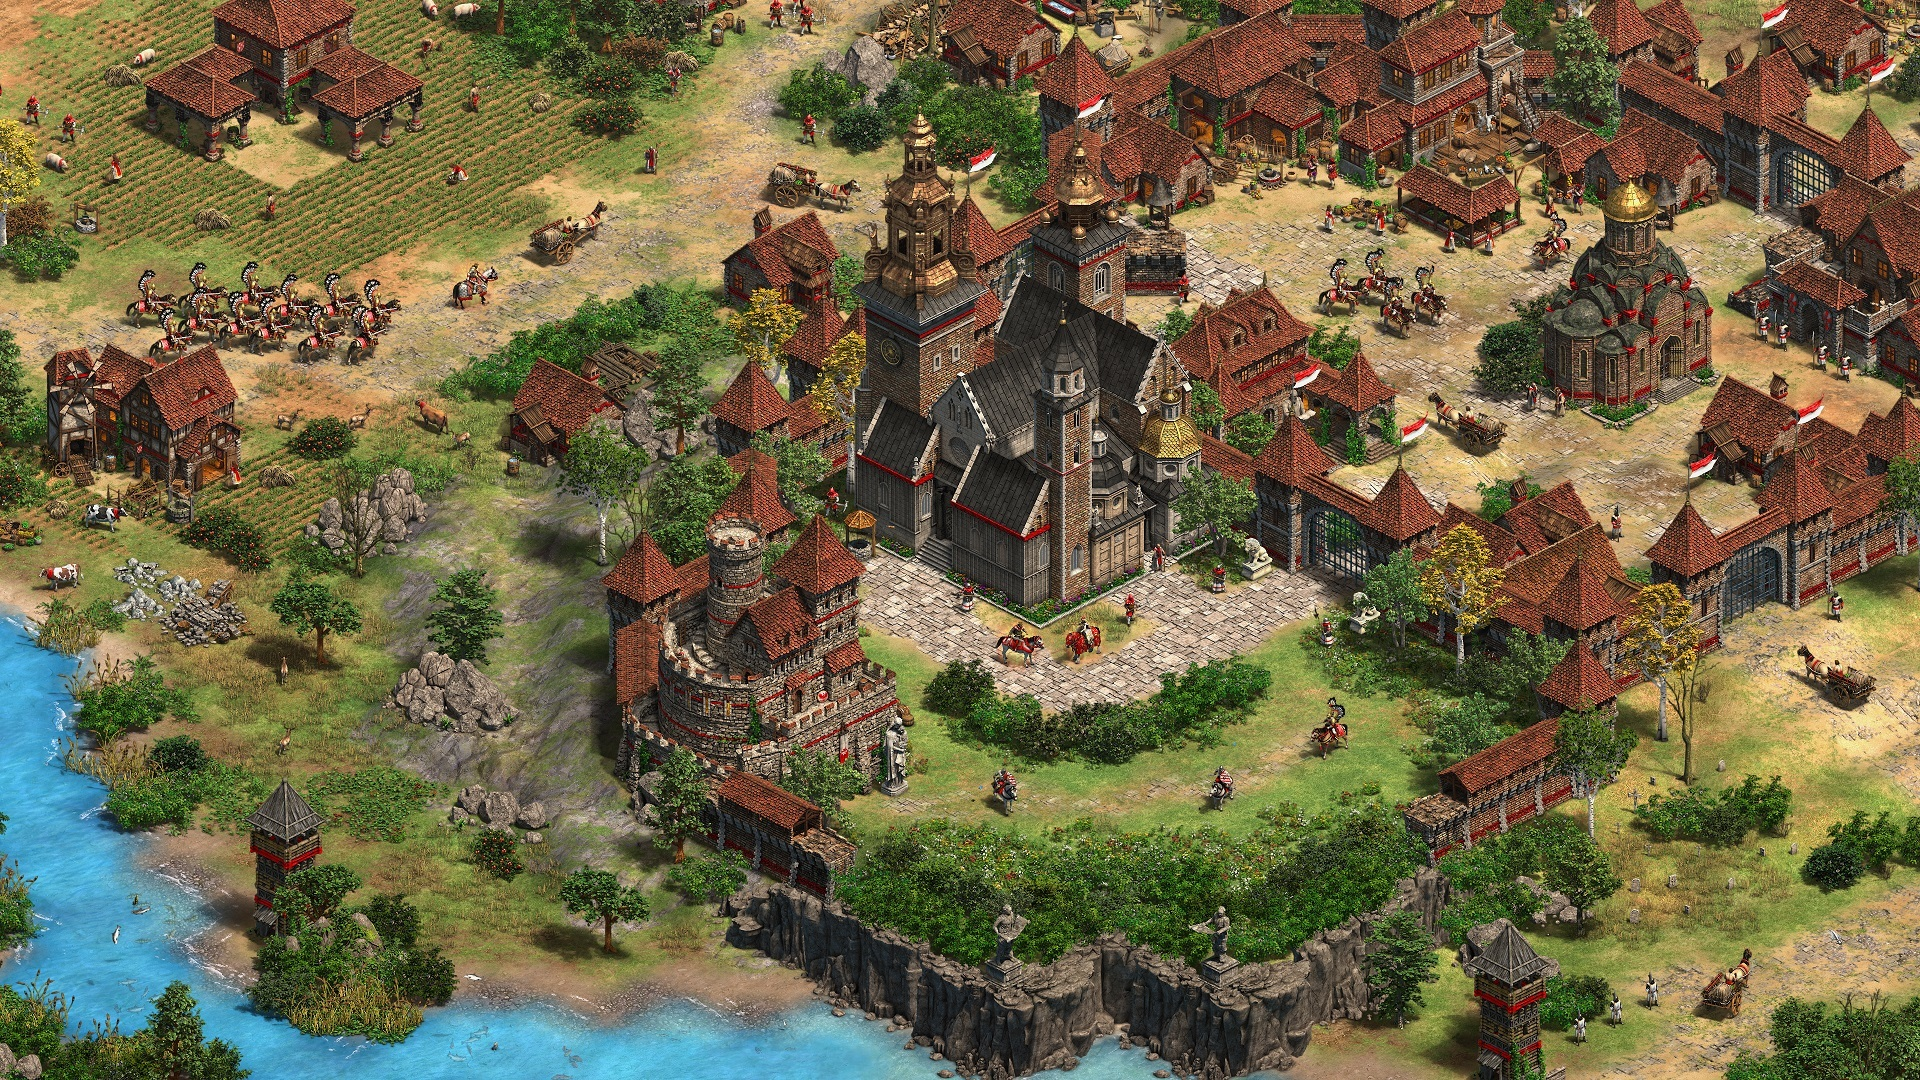 Age of Empires 2: Definitive Edition adds the Poles and Bohemians in a new DLC